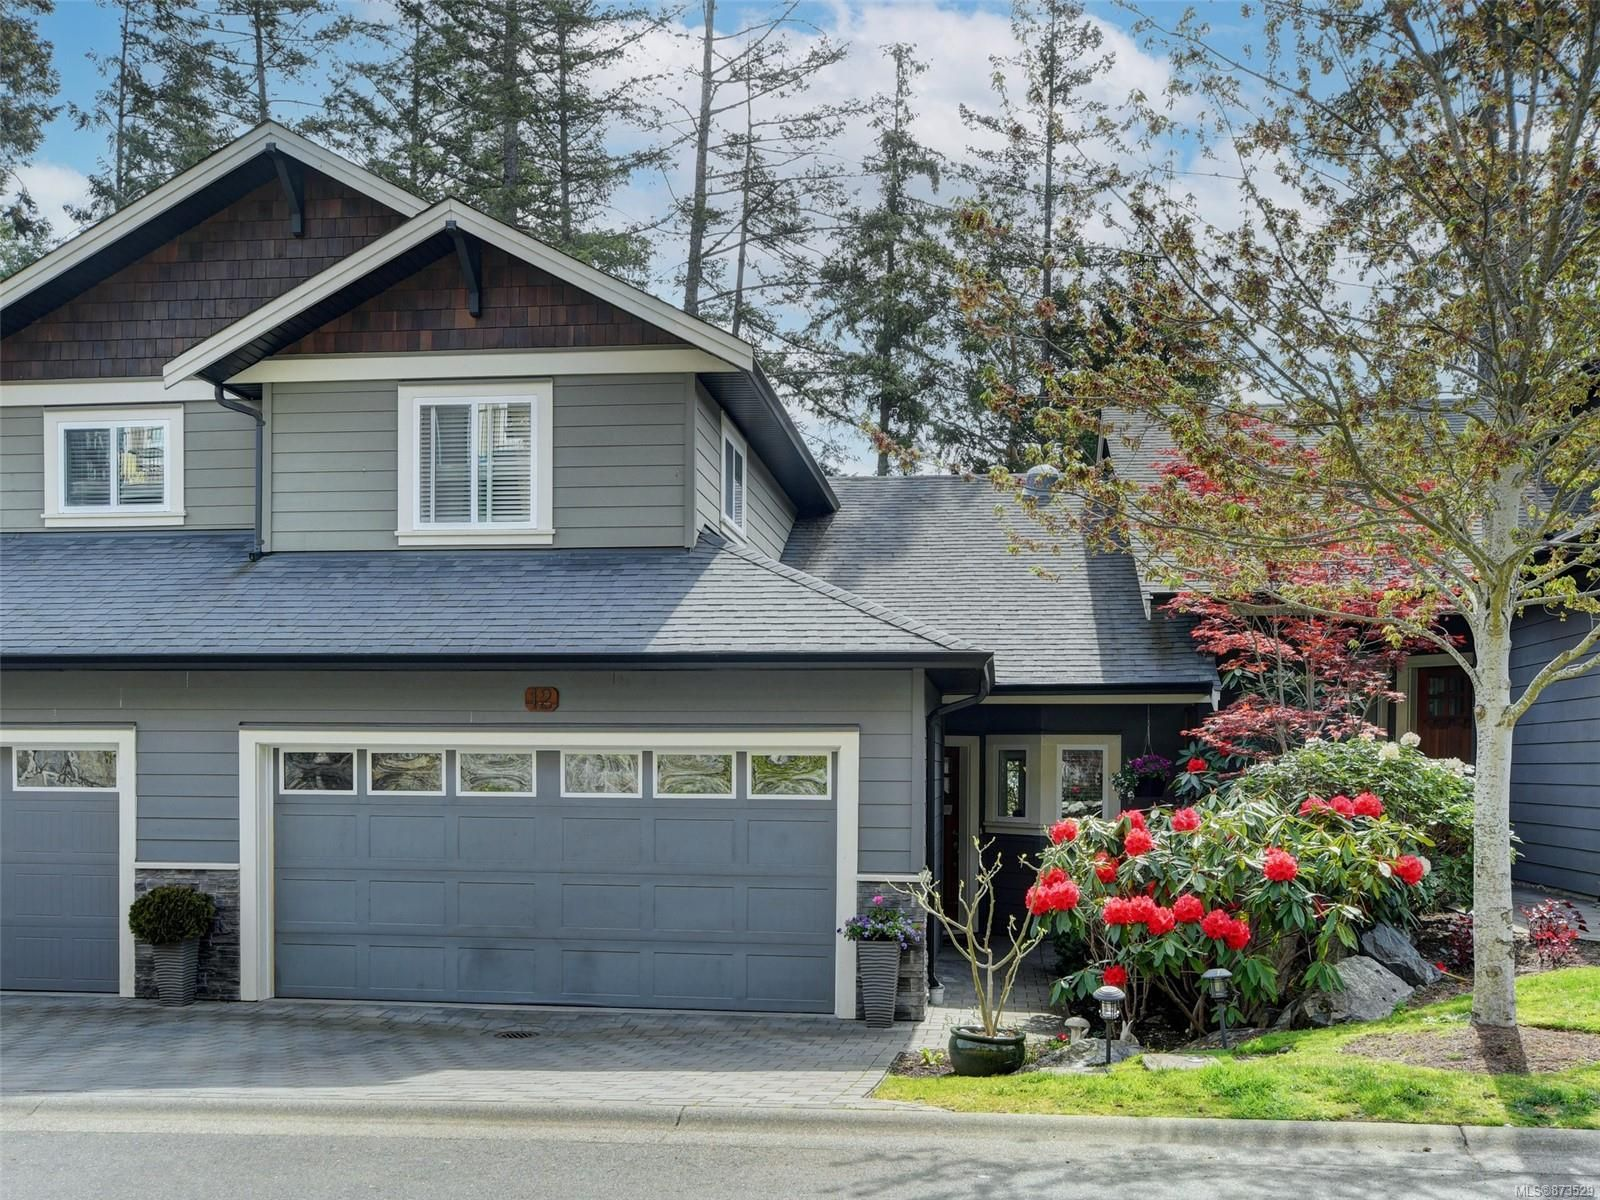 Main Photo: 12 2319 Chilco Rd in : VR Six Mile Row/Townhouse for sale (View Royal)  : MLS®# 873529